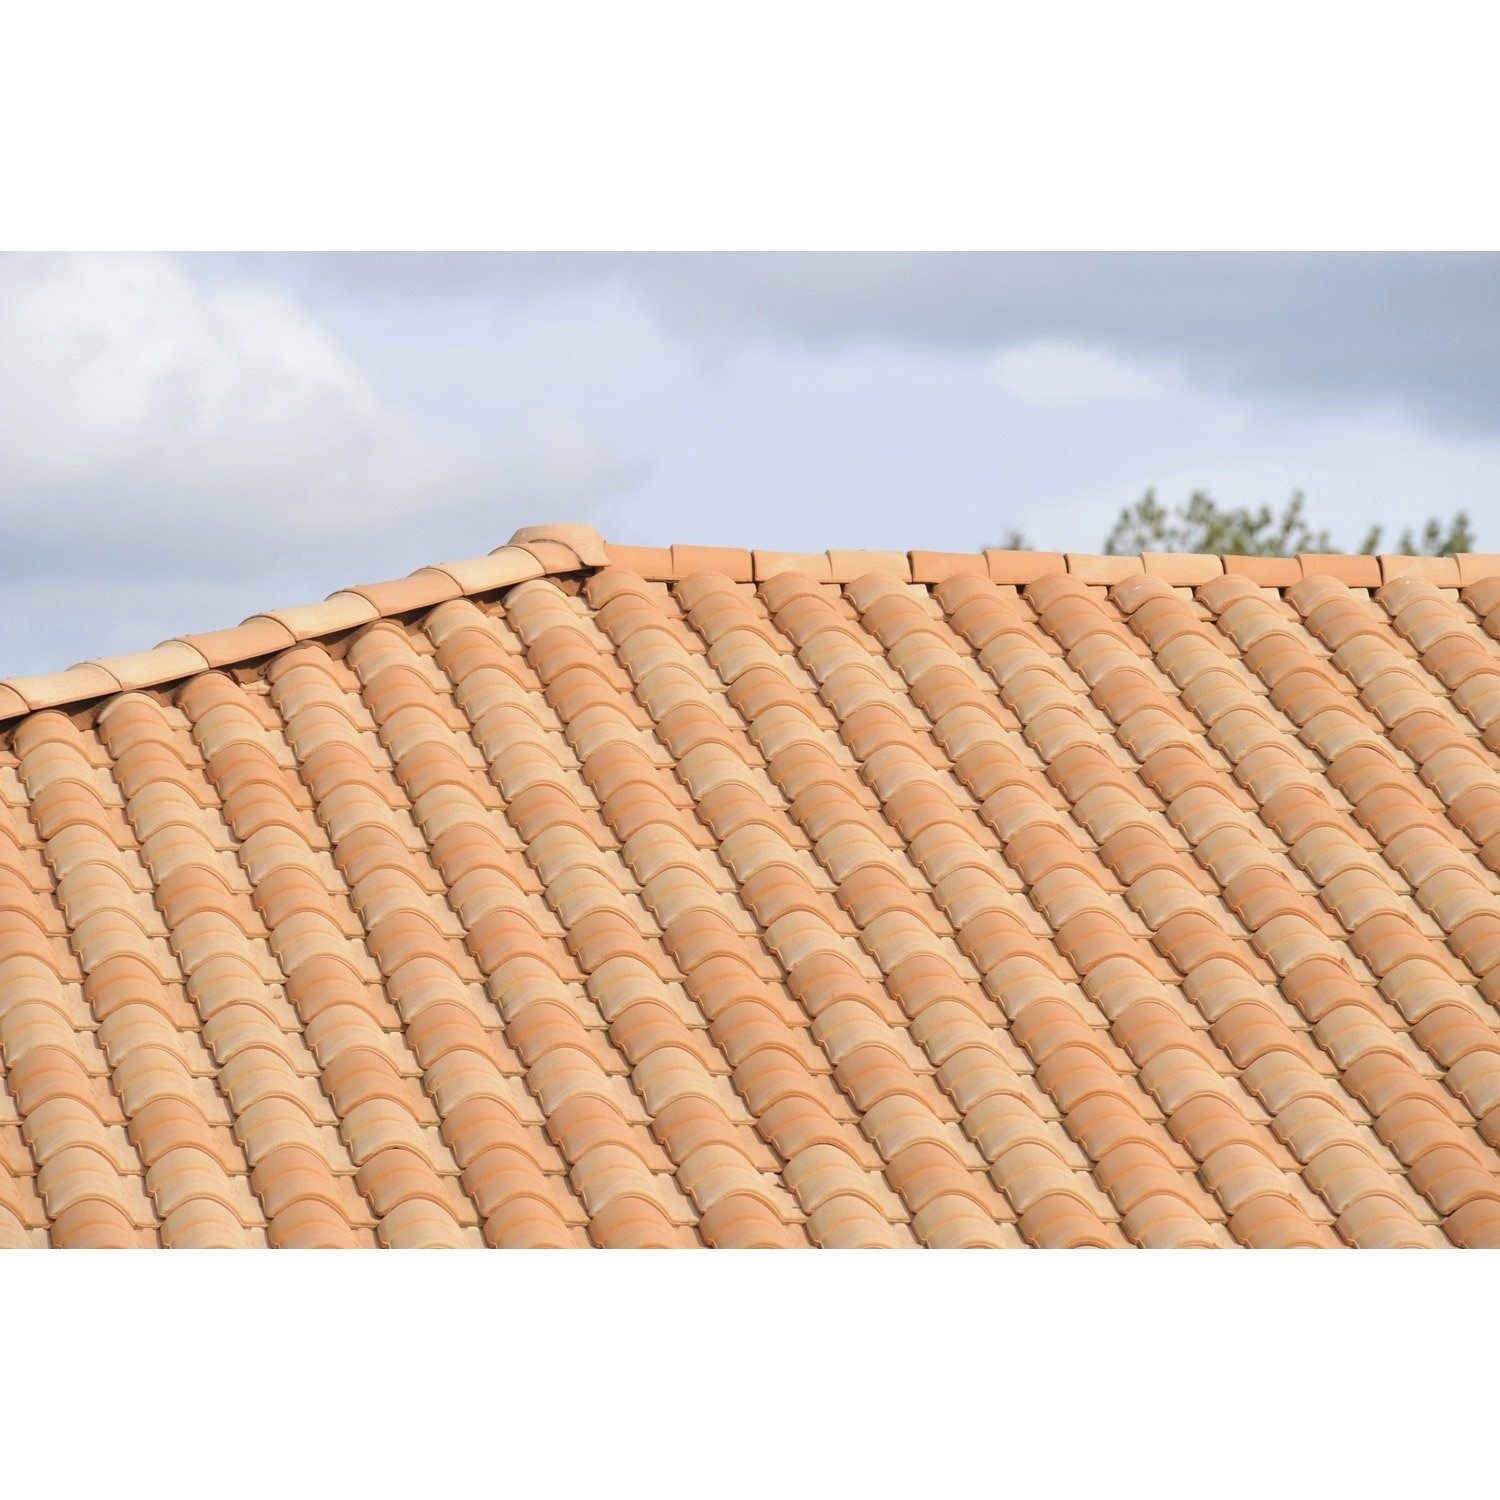 New Tuile Point P Roman Roofing